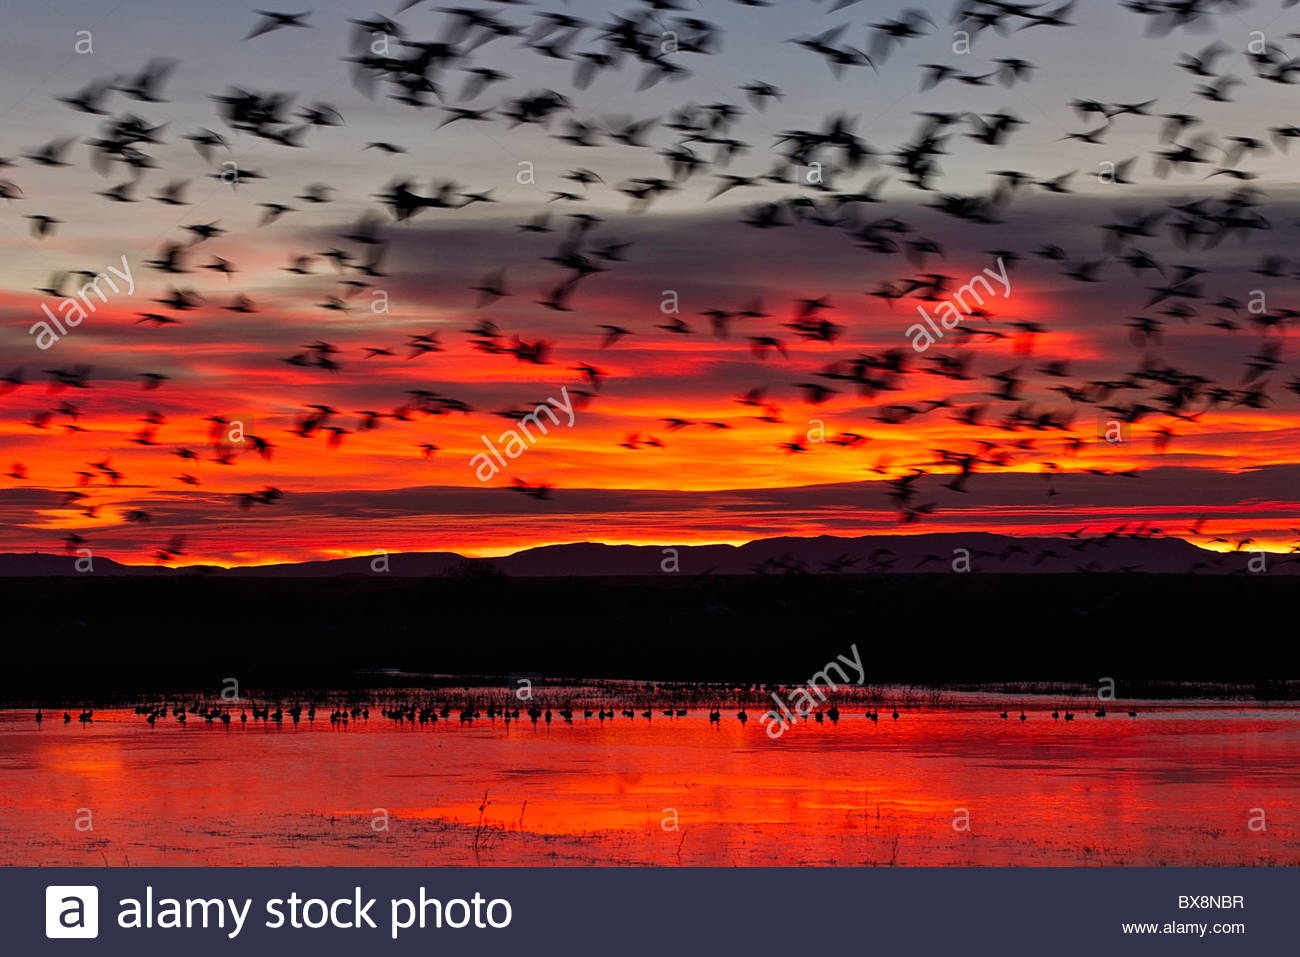 A large flock of snow geese (Chen caerulescens) lifts off from a pond in the Bosque del Apache National Wildlife - Stock Image